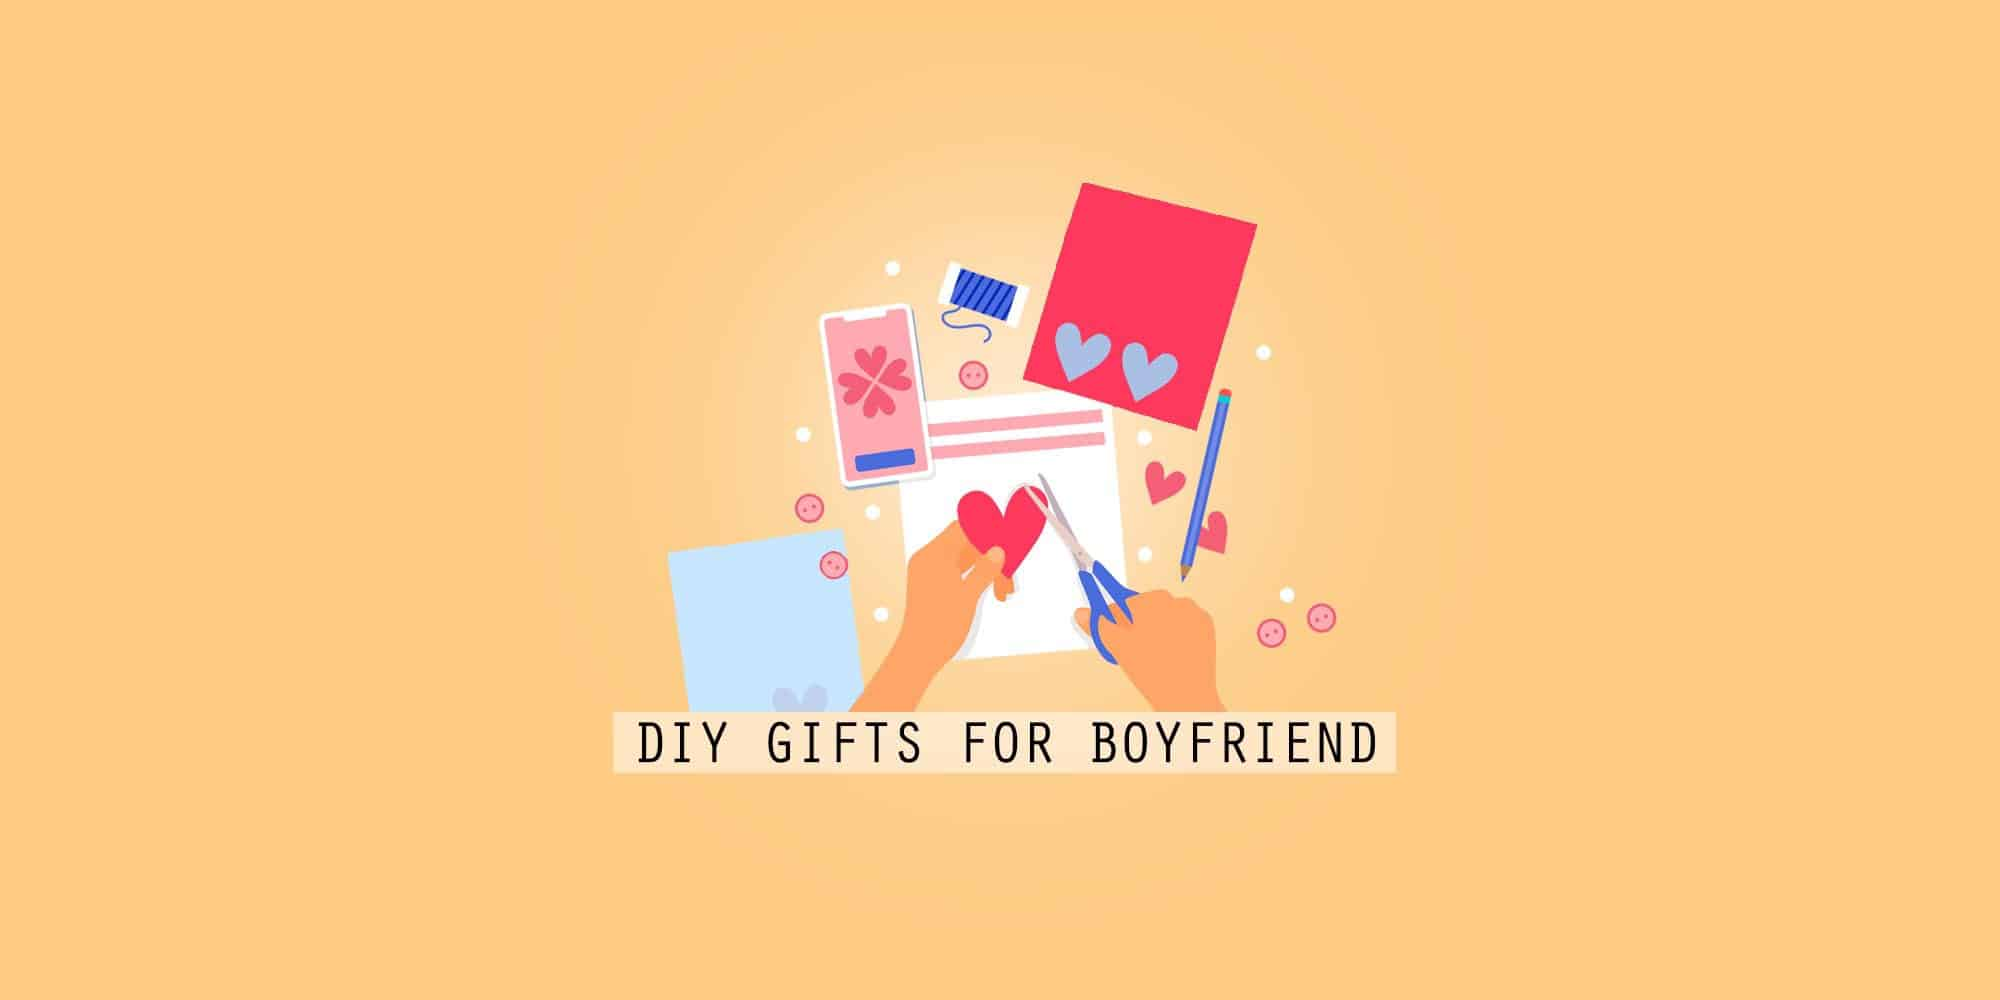 DIY Gifts For Your Boyfriend: 30+ Cute And Easy Handmade Gift Ideas (2021)